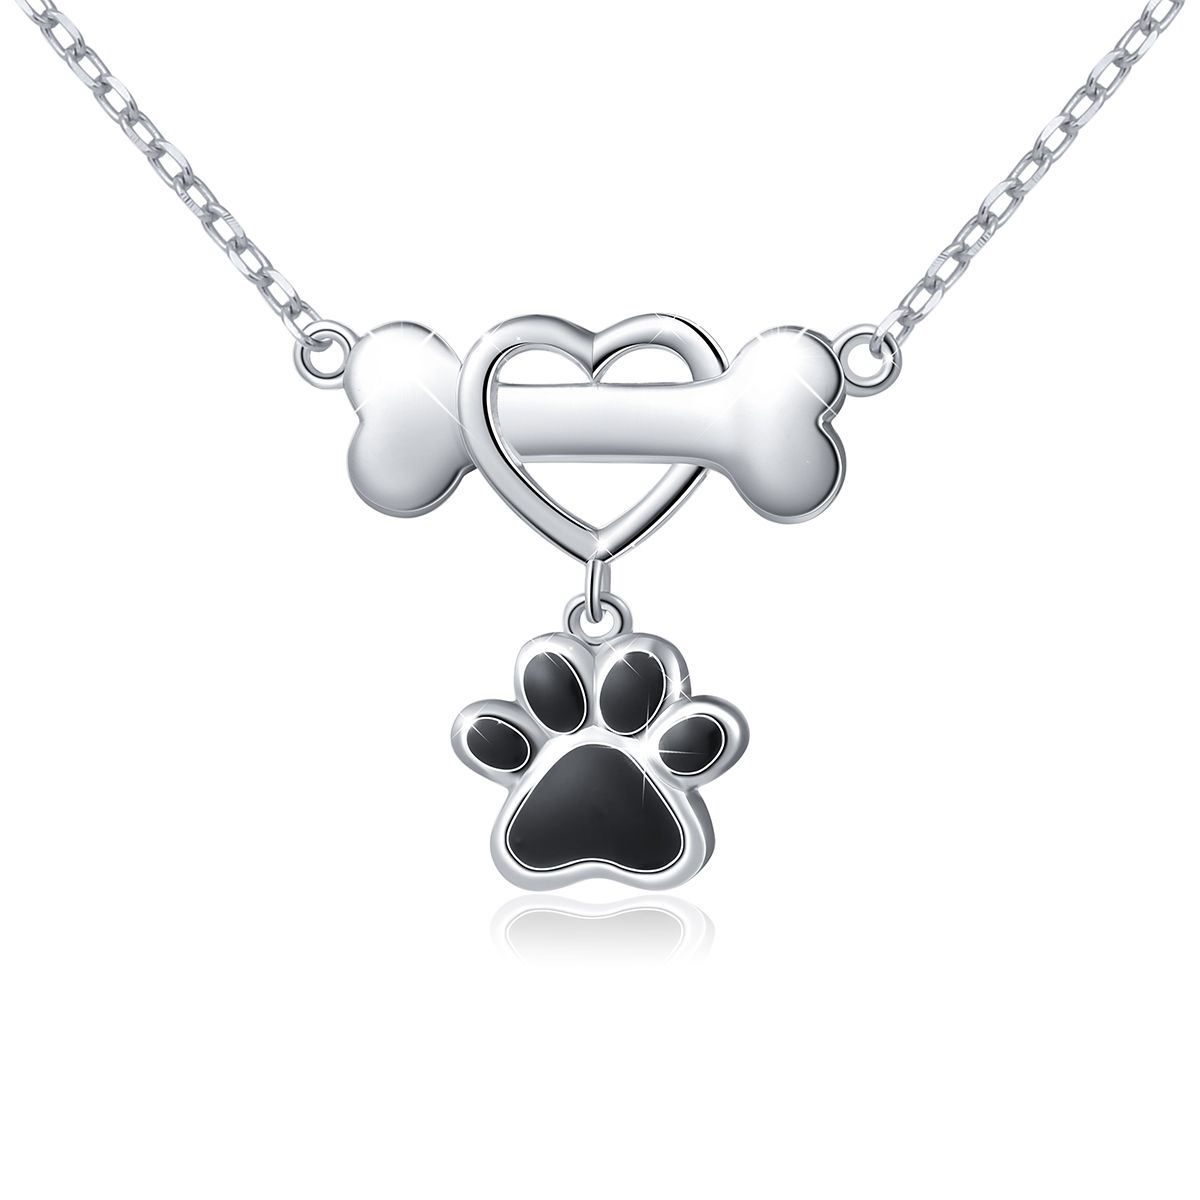 925 Sterling Silver Puppy Dog Paw Infinity Neckelaces Jewellery for Women Silver Pendant Necklace Gifts for Women Gift Packaging 3qIivQhku8